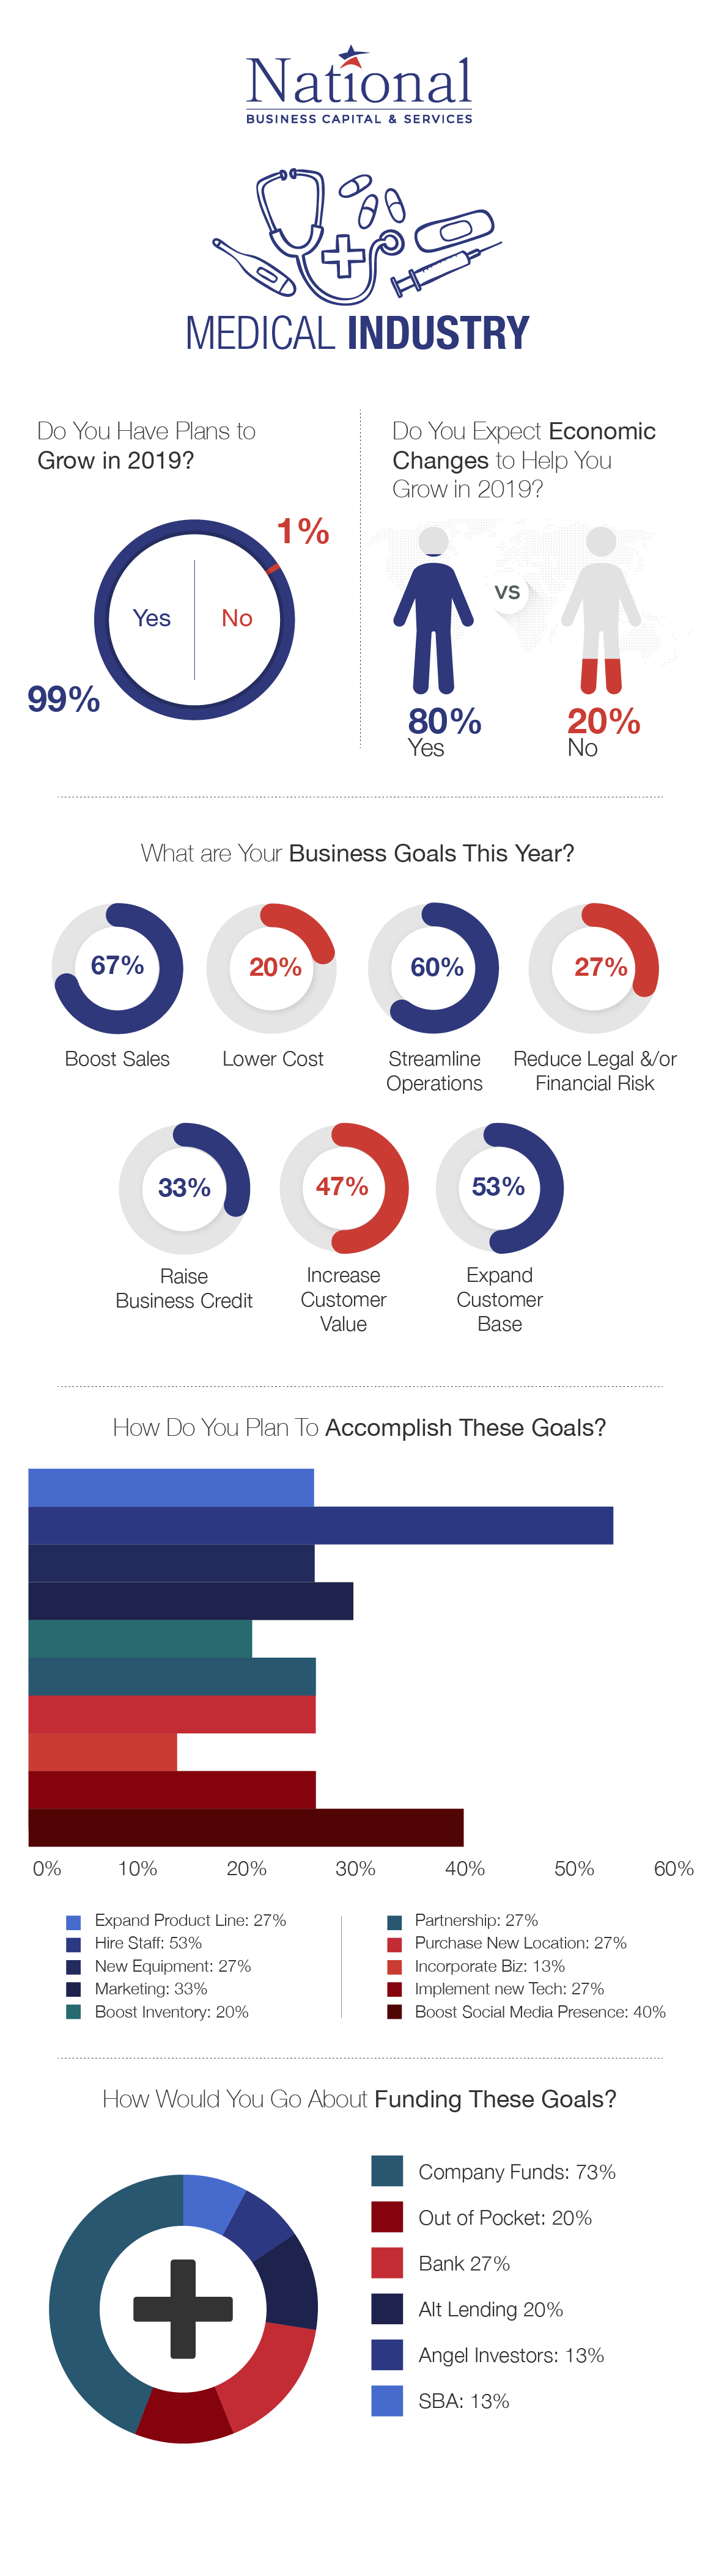 medical industry business confidence survey results infographic